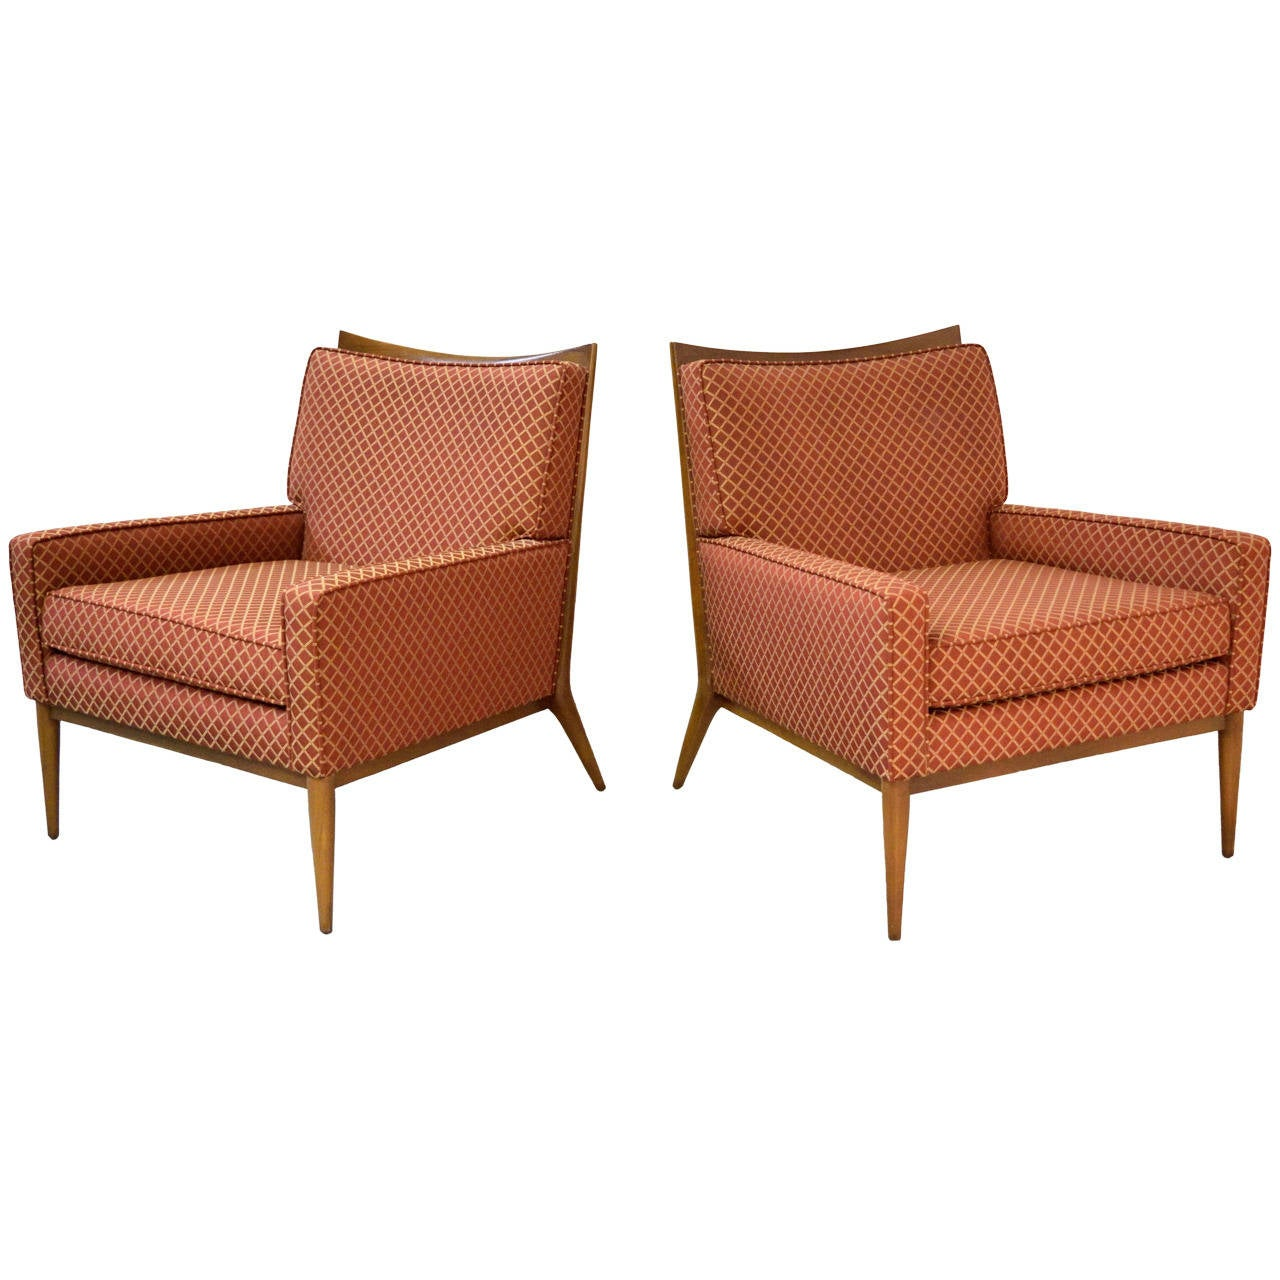 Pair Of Paul Mccobb For Directional Lounge Chairs At 1stdibs